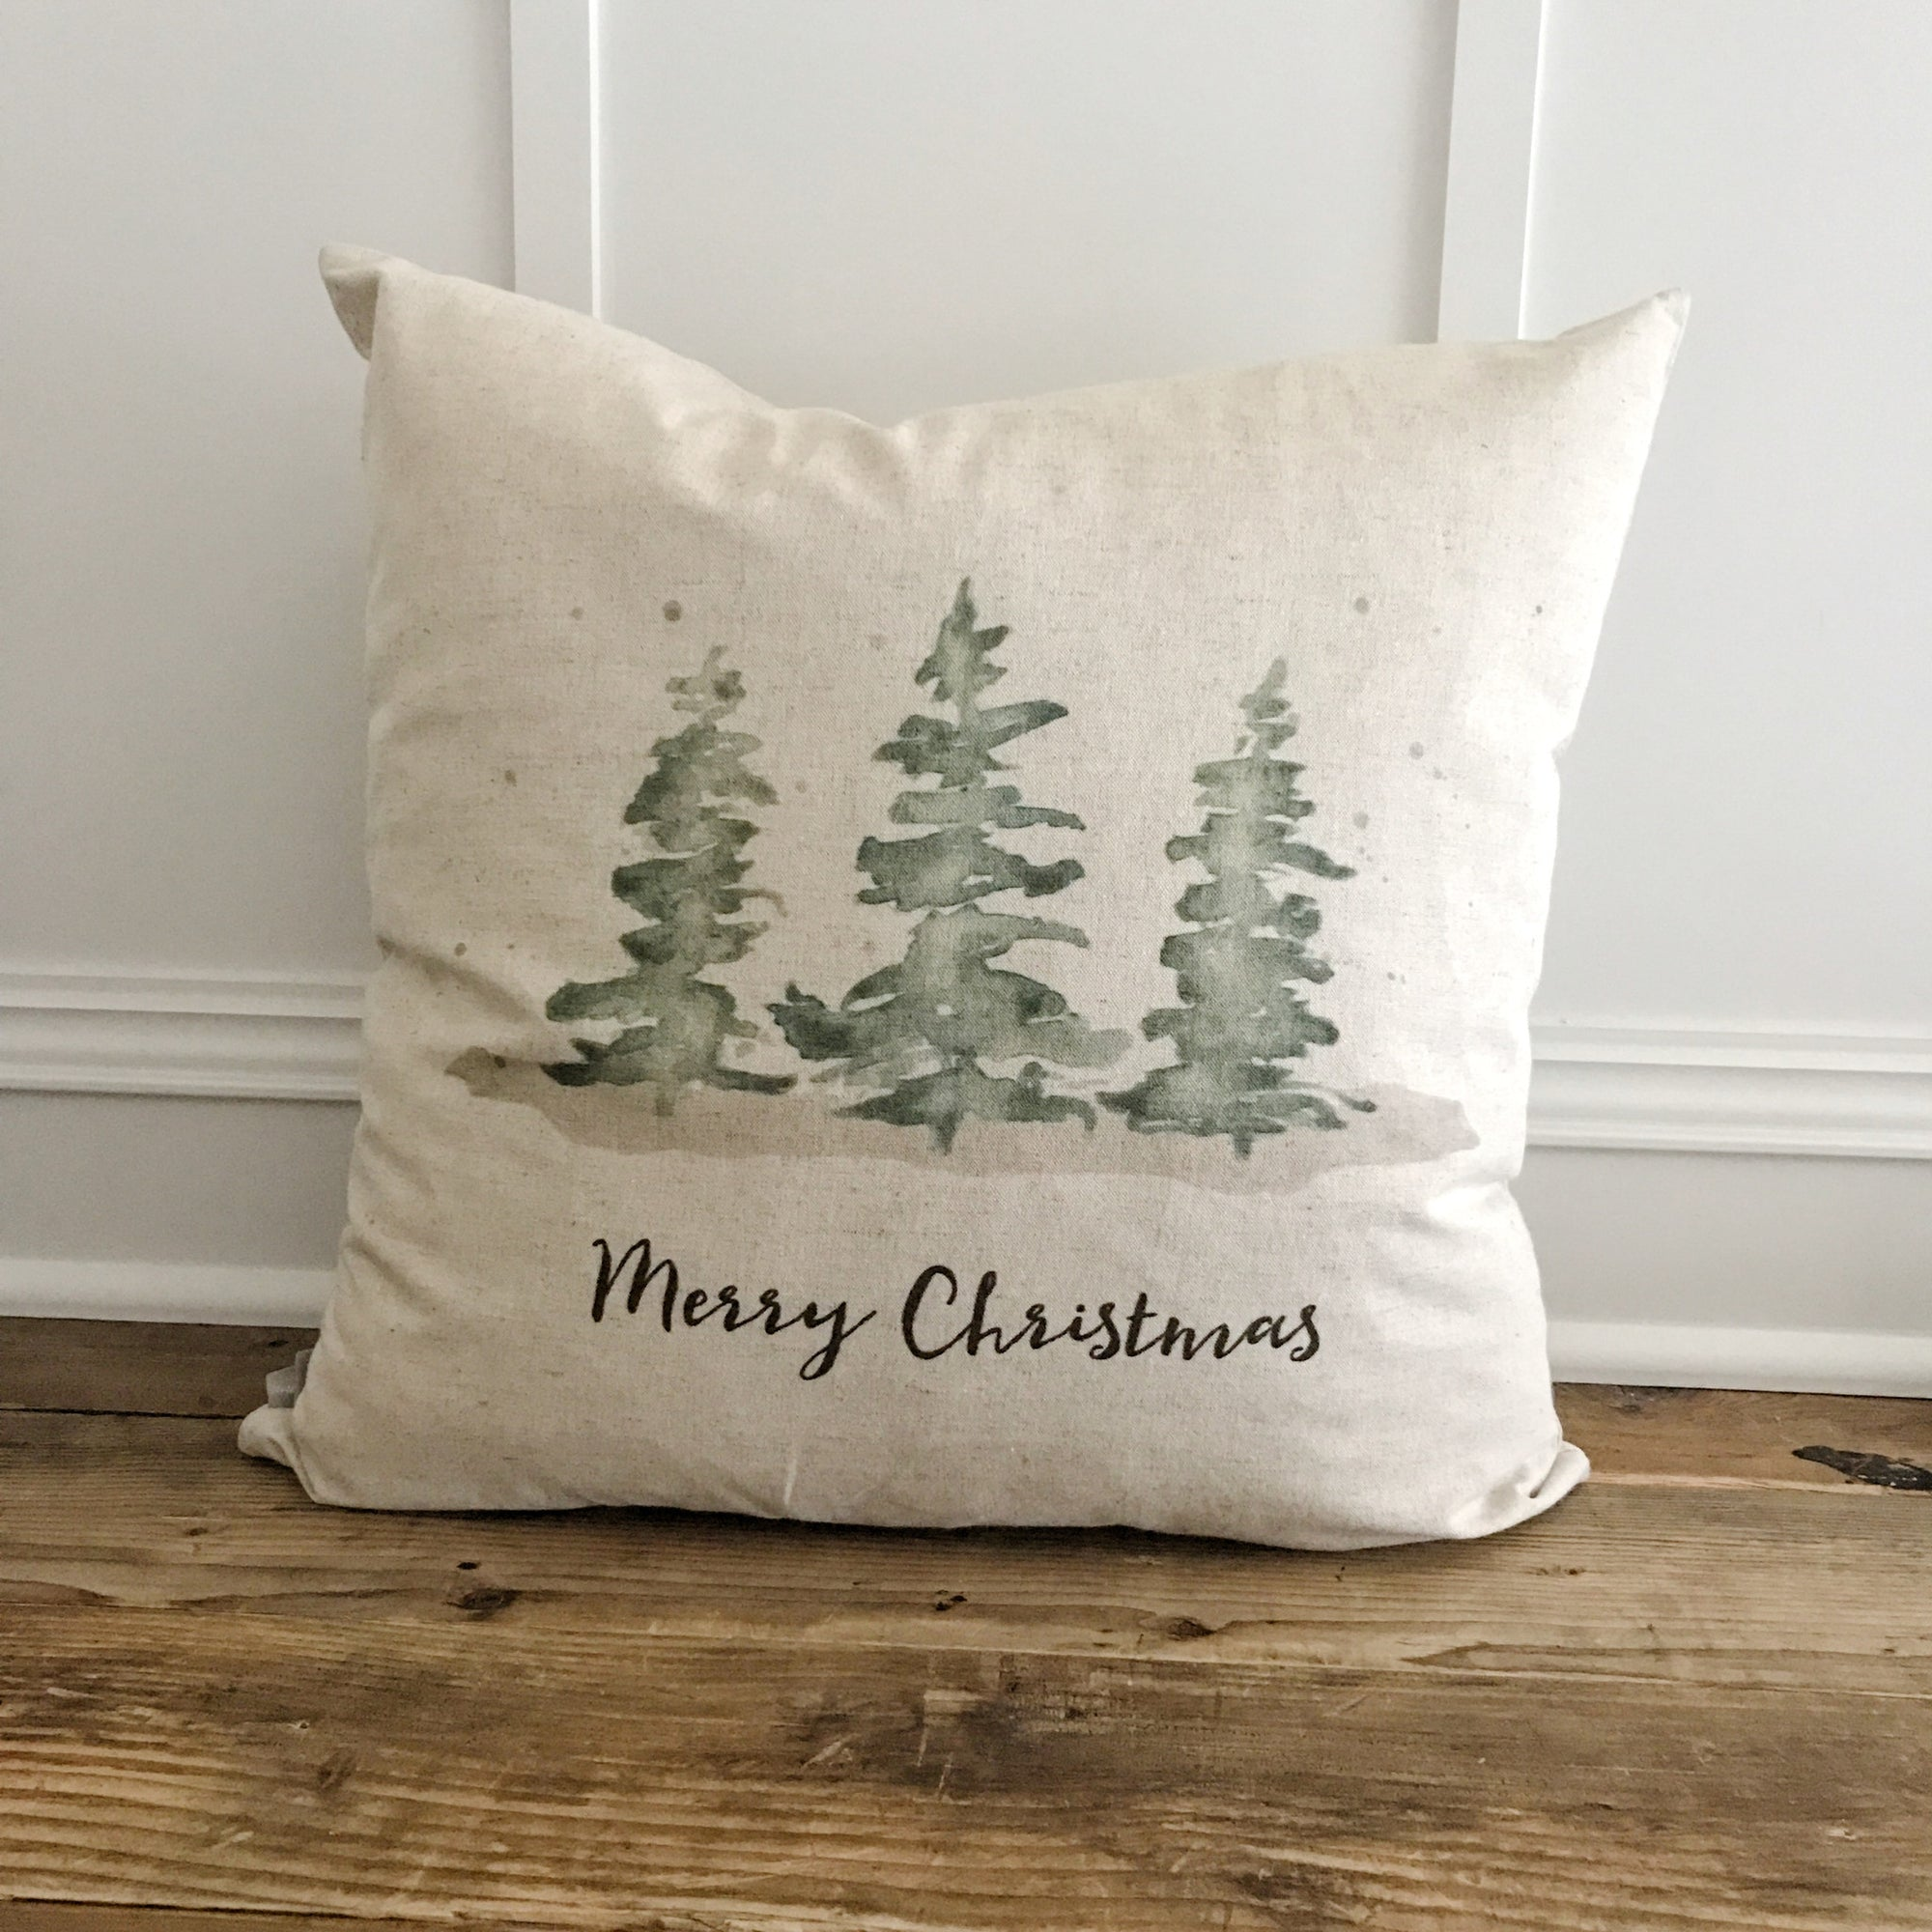 Merry Christmas Evergreen Trees Pillow Cover - Linen and Ivory